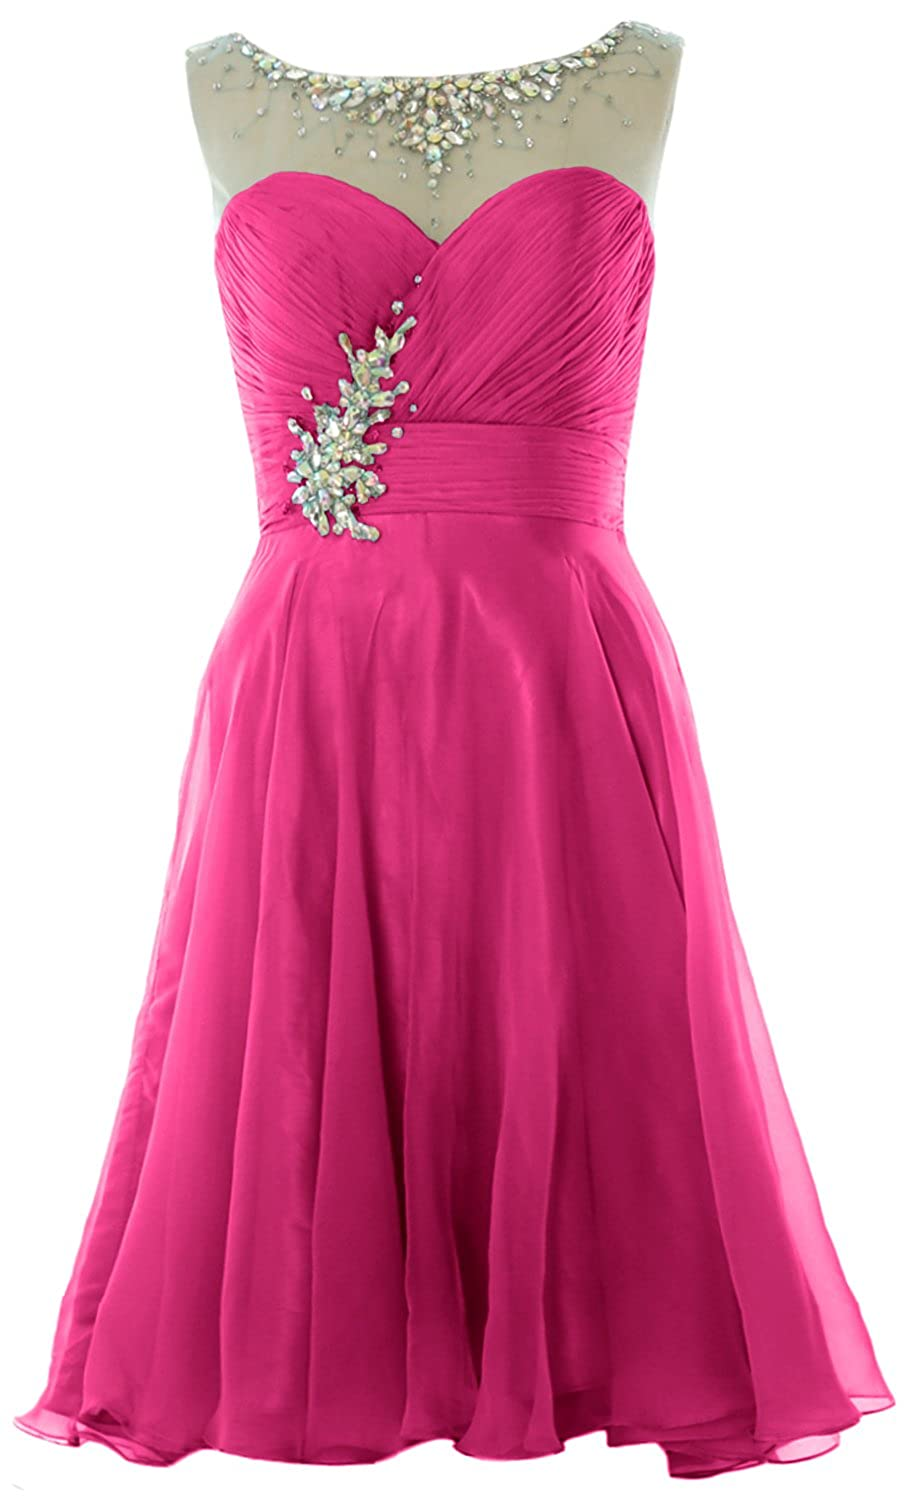 MACloth Women Straps Crystal Chiffon Short Prom Dress Cocktail Party Formal Gown